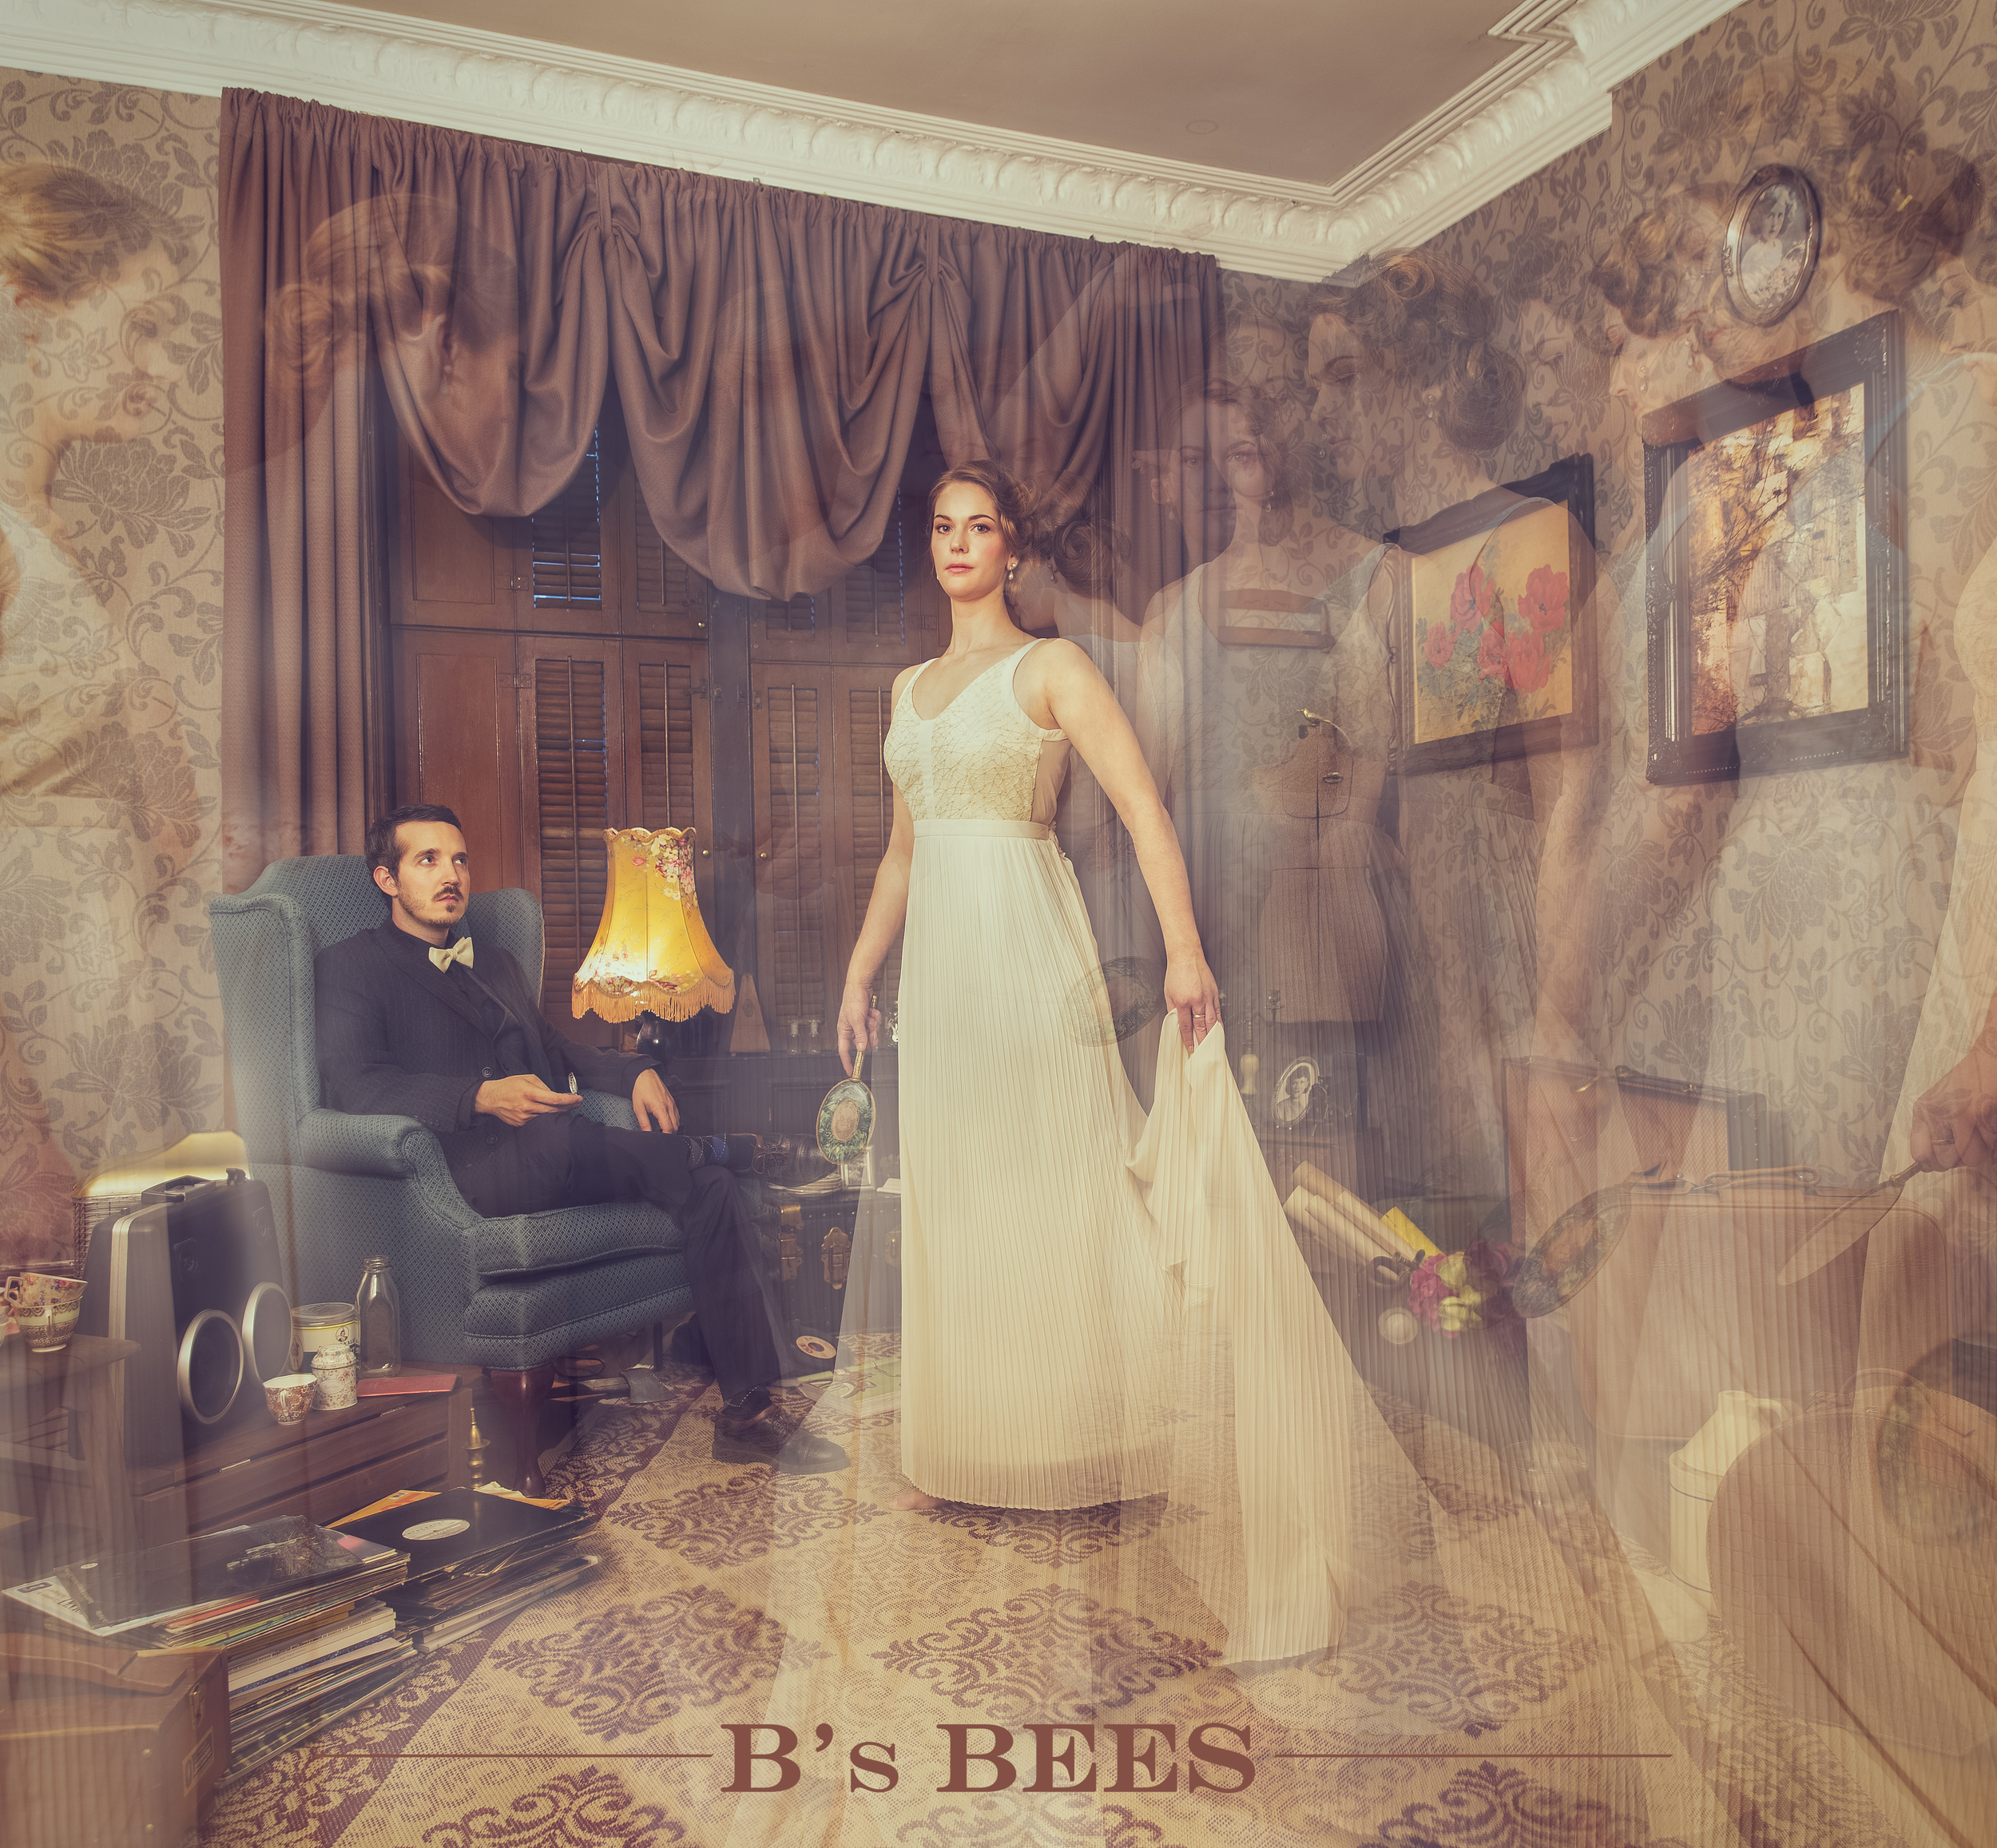 BsBees Album Cover by Faya